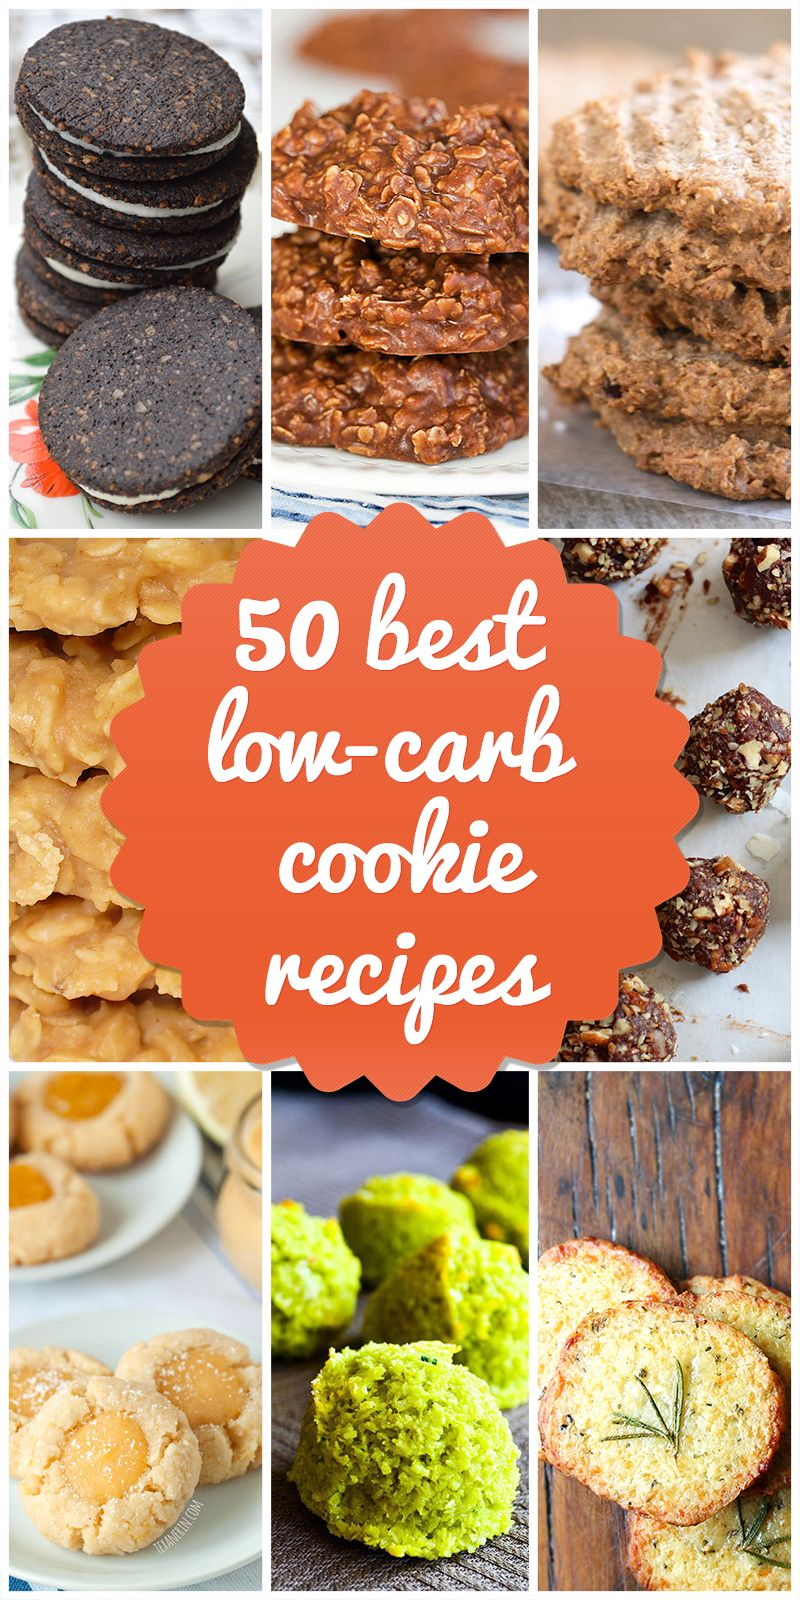 50 Best Low-carb Cookies to Keep You Baking All Year   //www ...